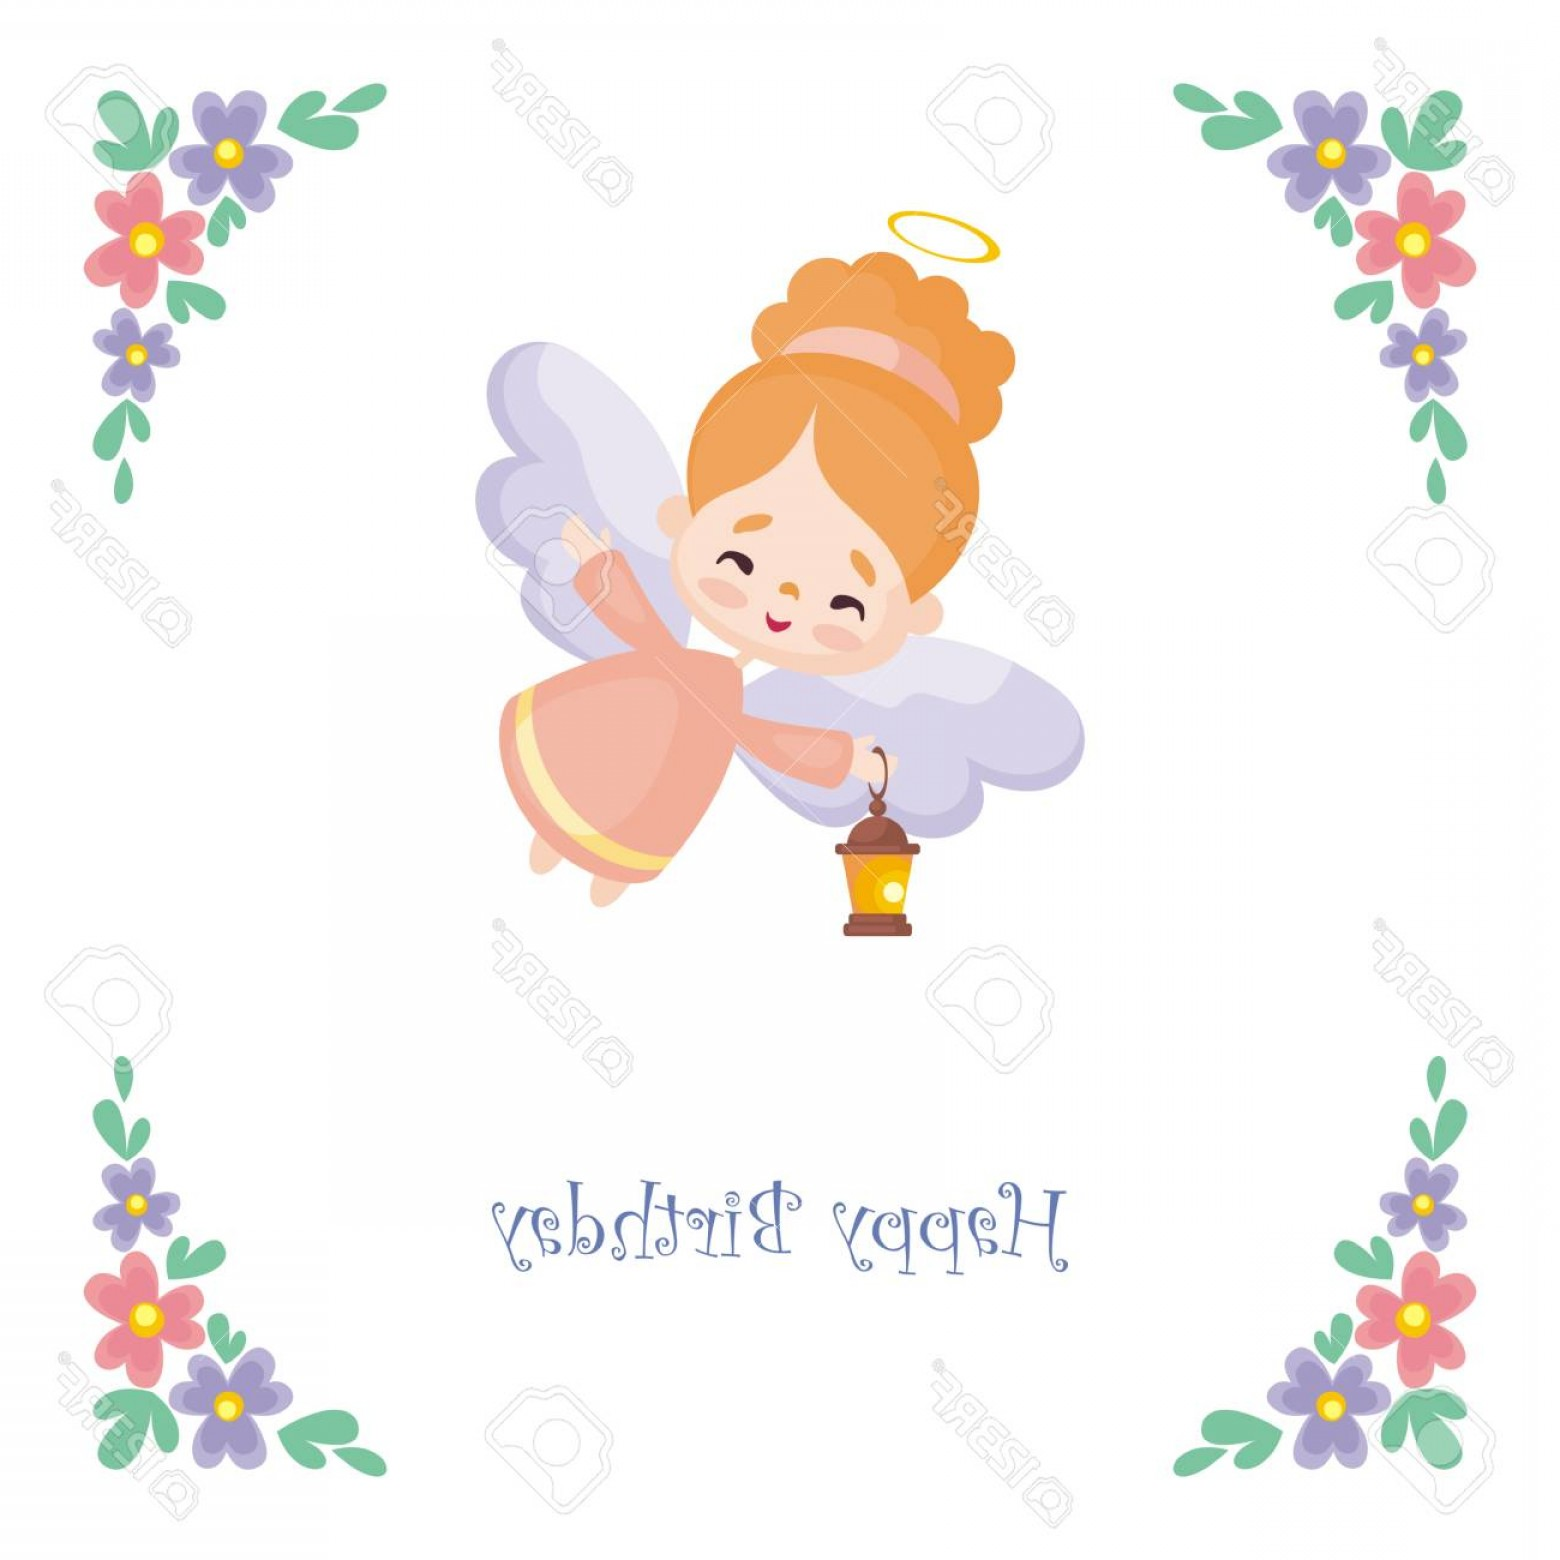 Little Angel Vector: Photostock Vector Birthday Greeting Card With The Image Of A Pretty Little Angel Vector Illustration On A White Backgr